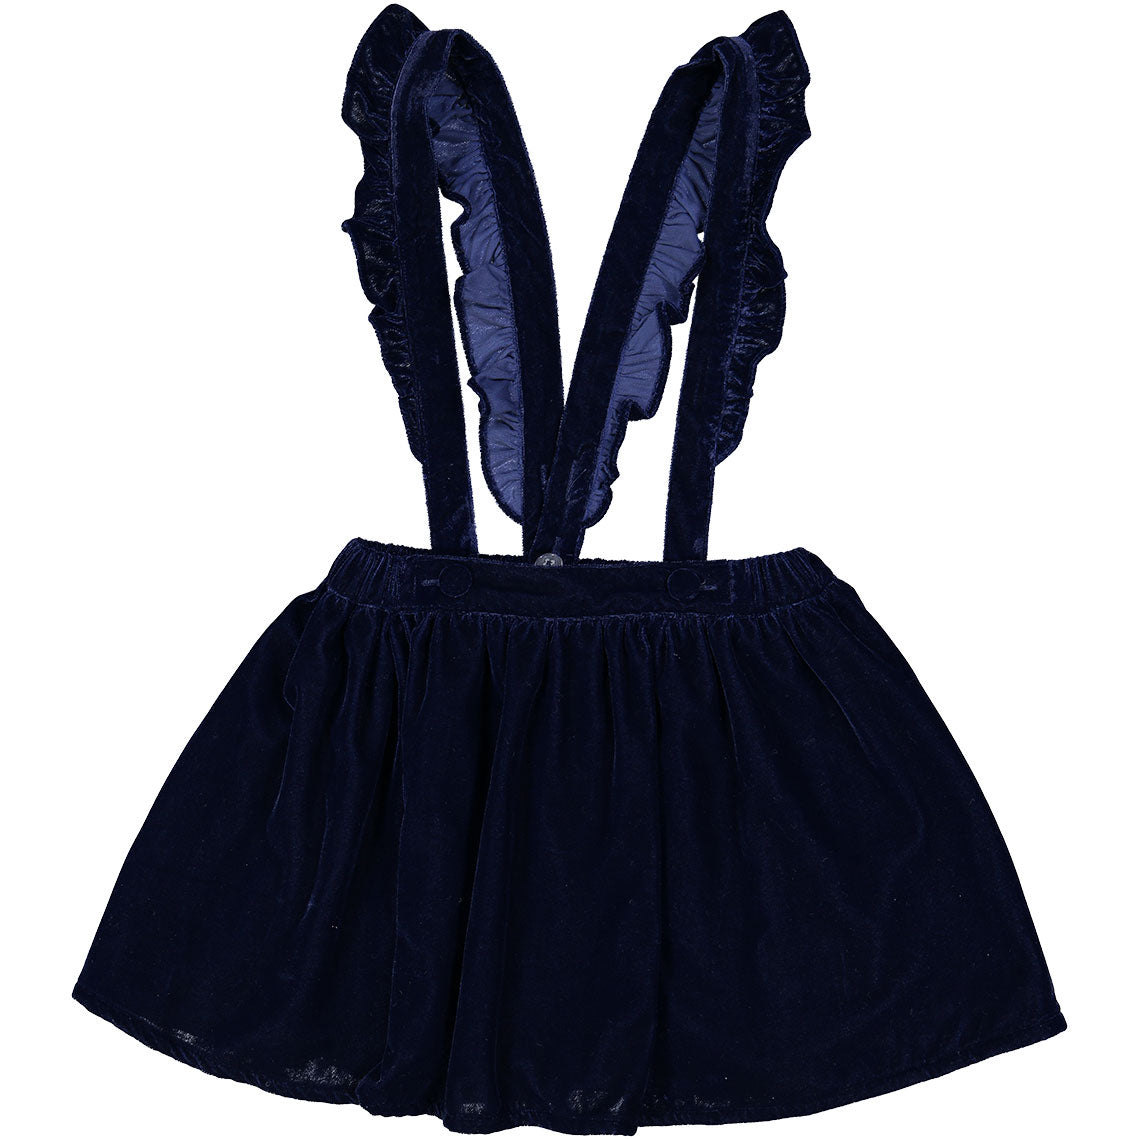 Louis Louise Navy Velvet Suspender Skirt - Ladida